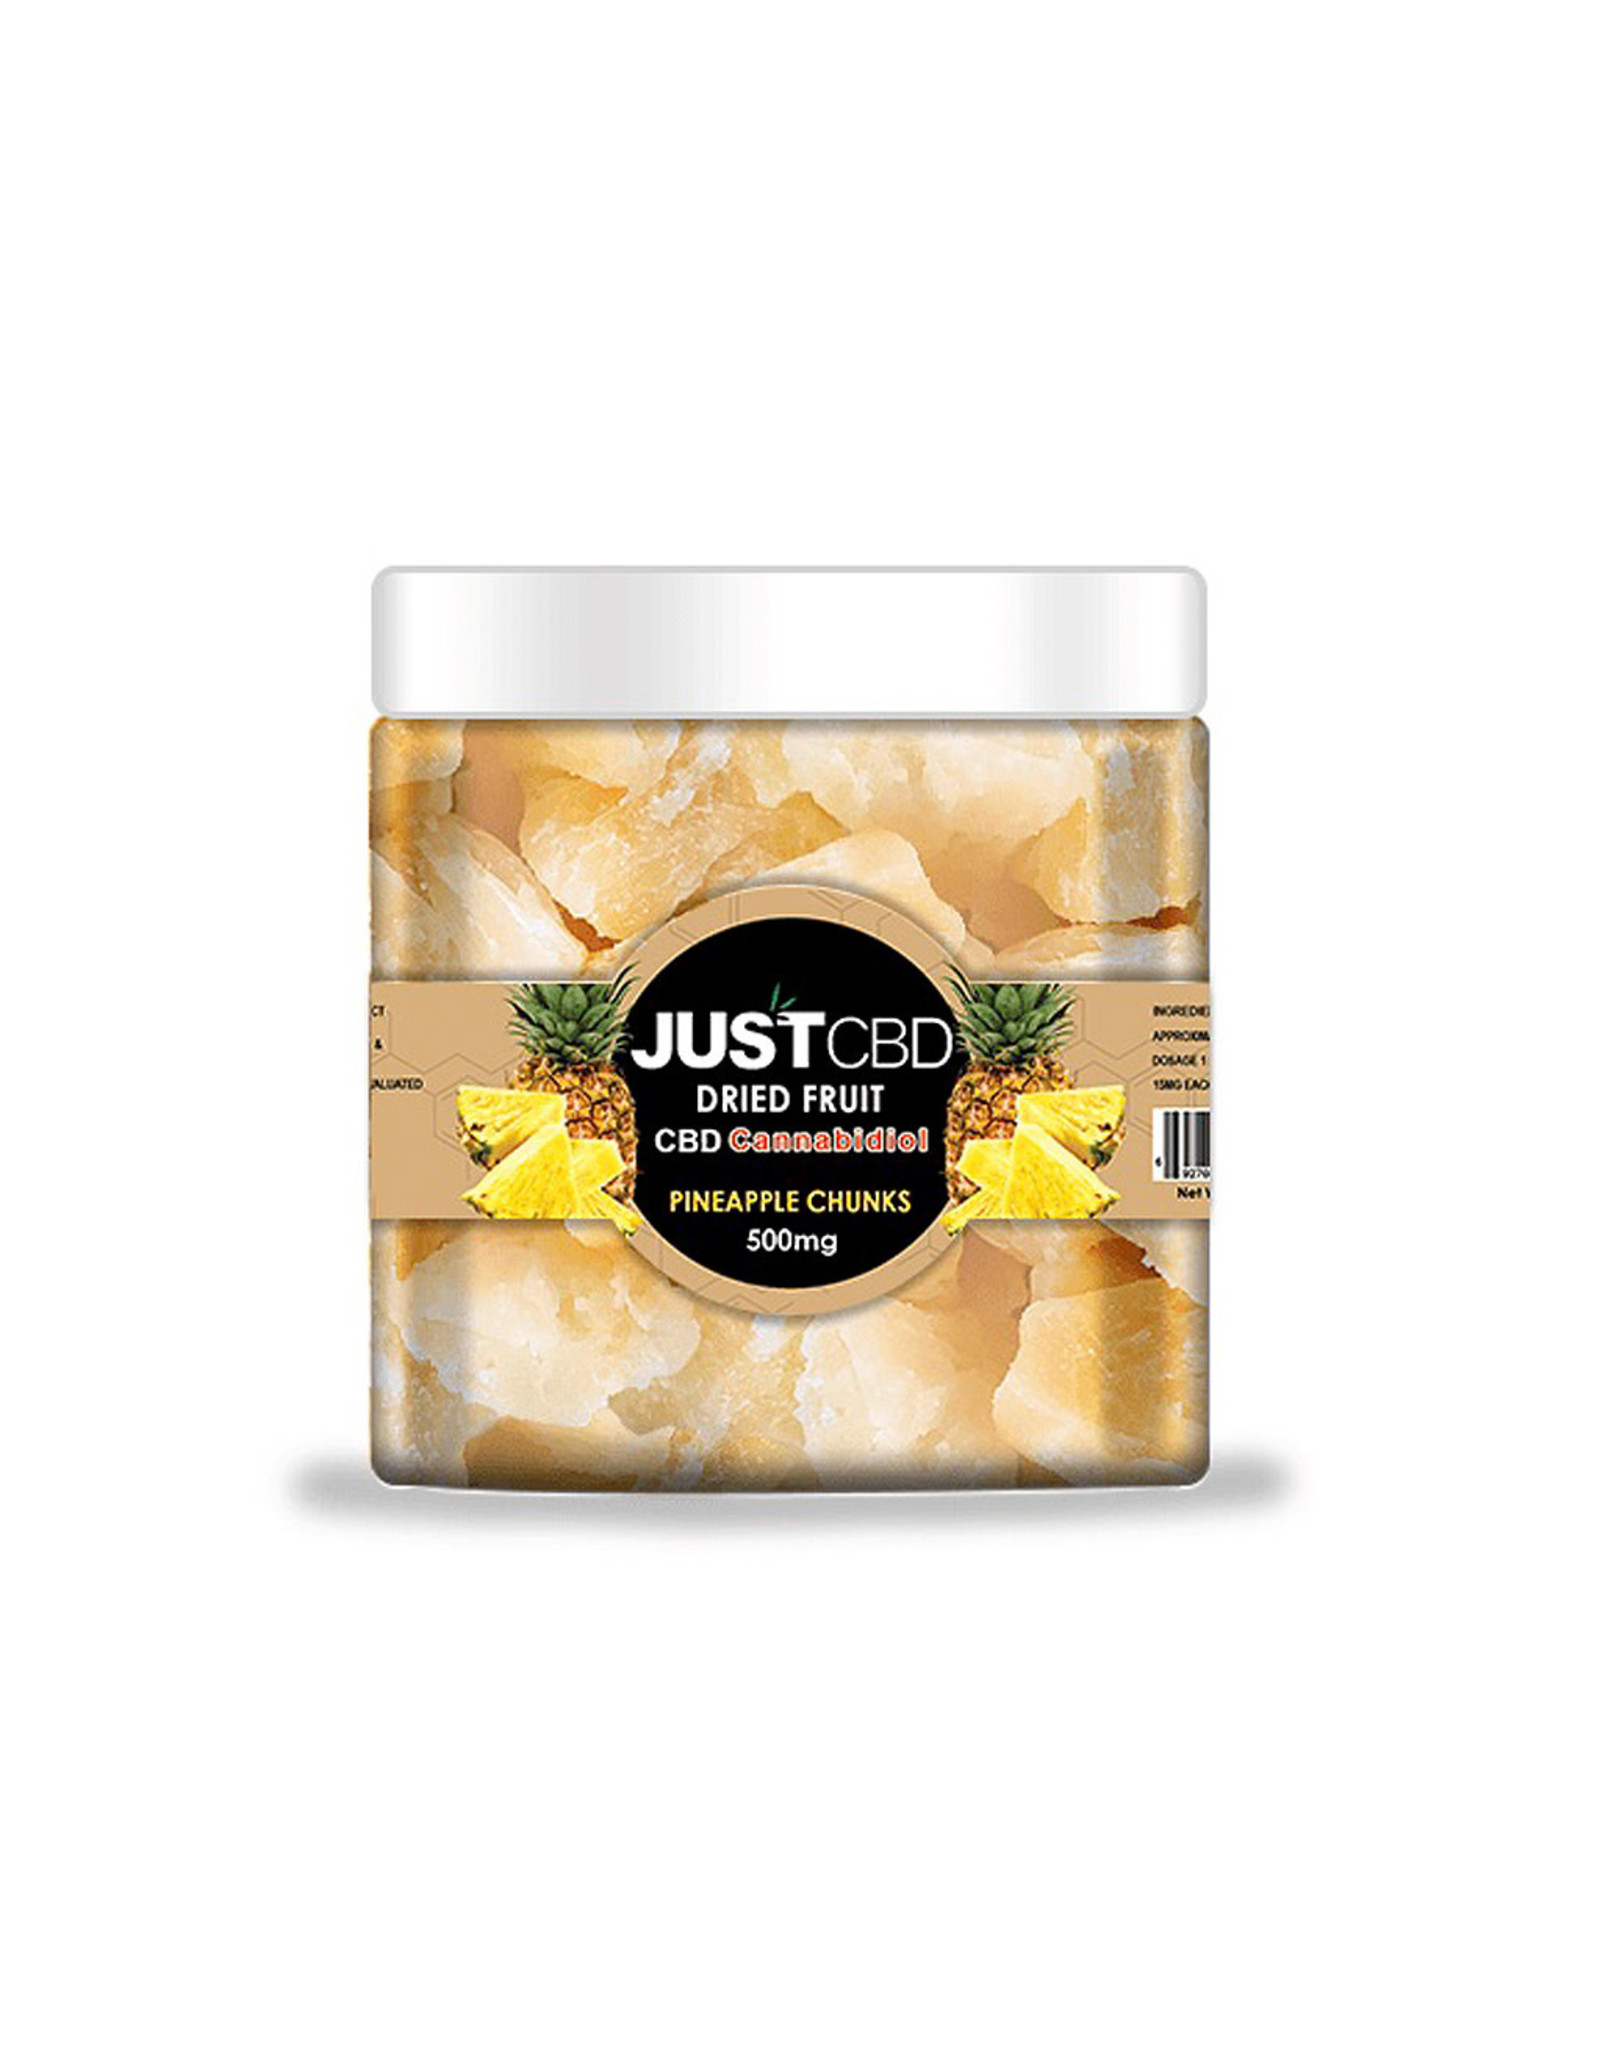 JustCBD JustCBD 500mg Dried Fruit